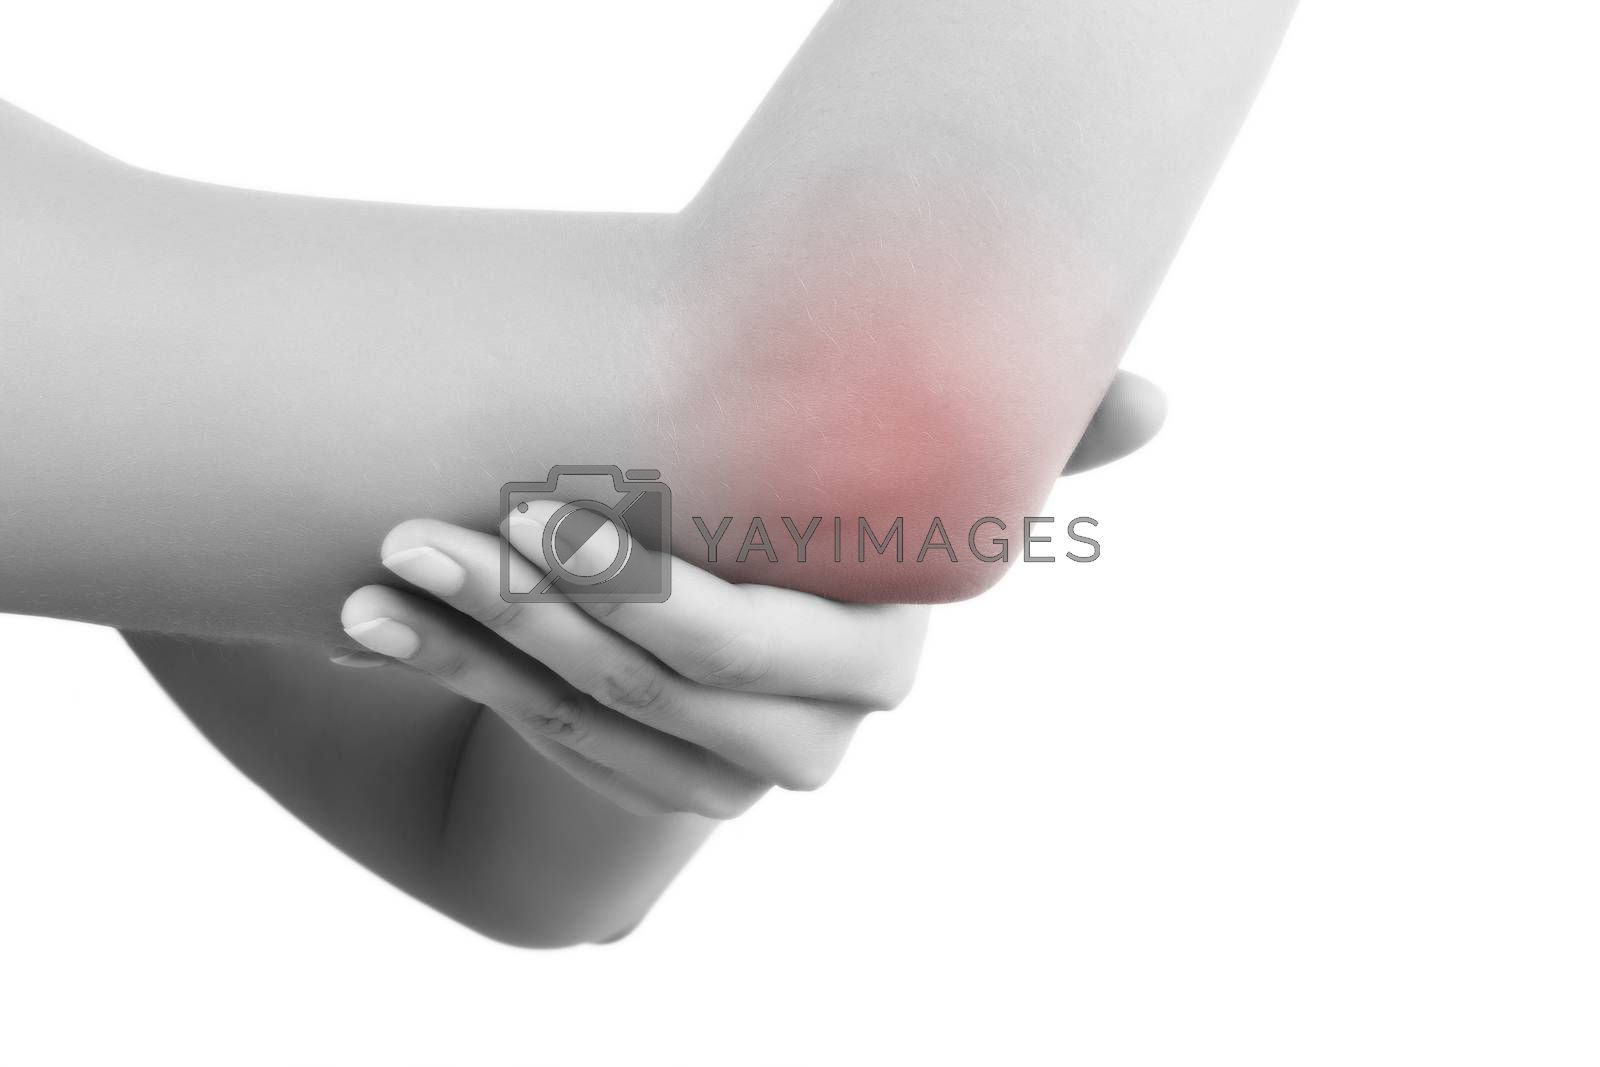 Close up on highlighted pain area, elbow pain. Female hand holding her elbow isolated on white background. Chronic pain concept.